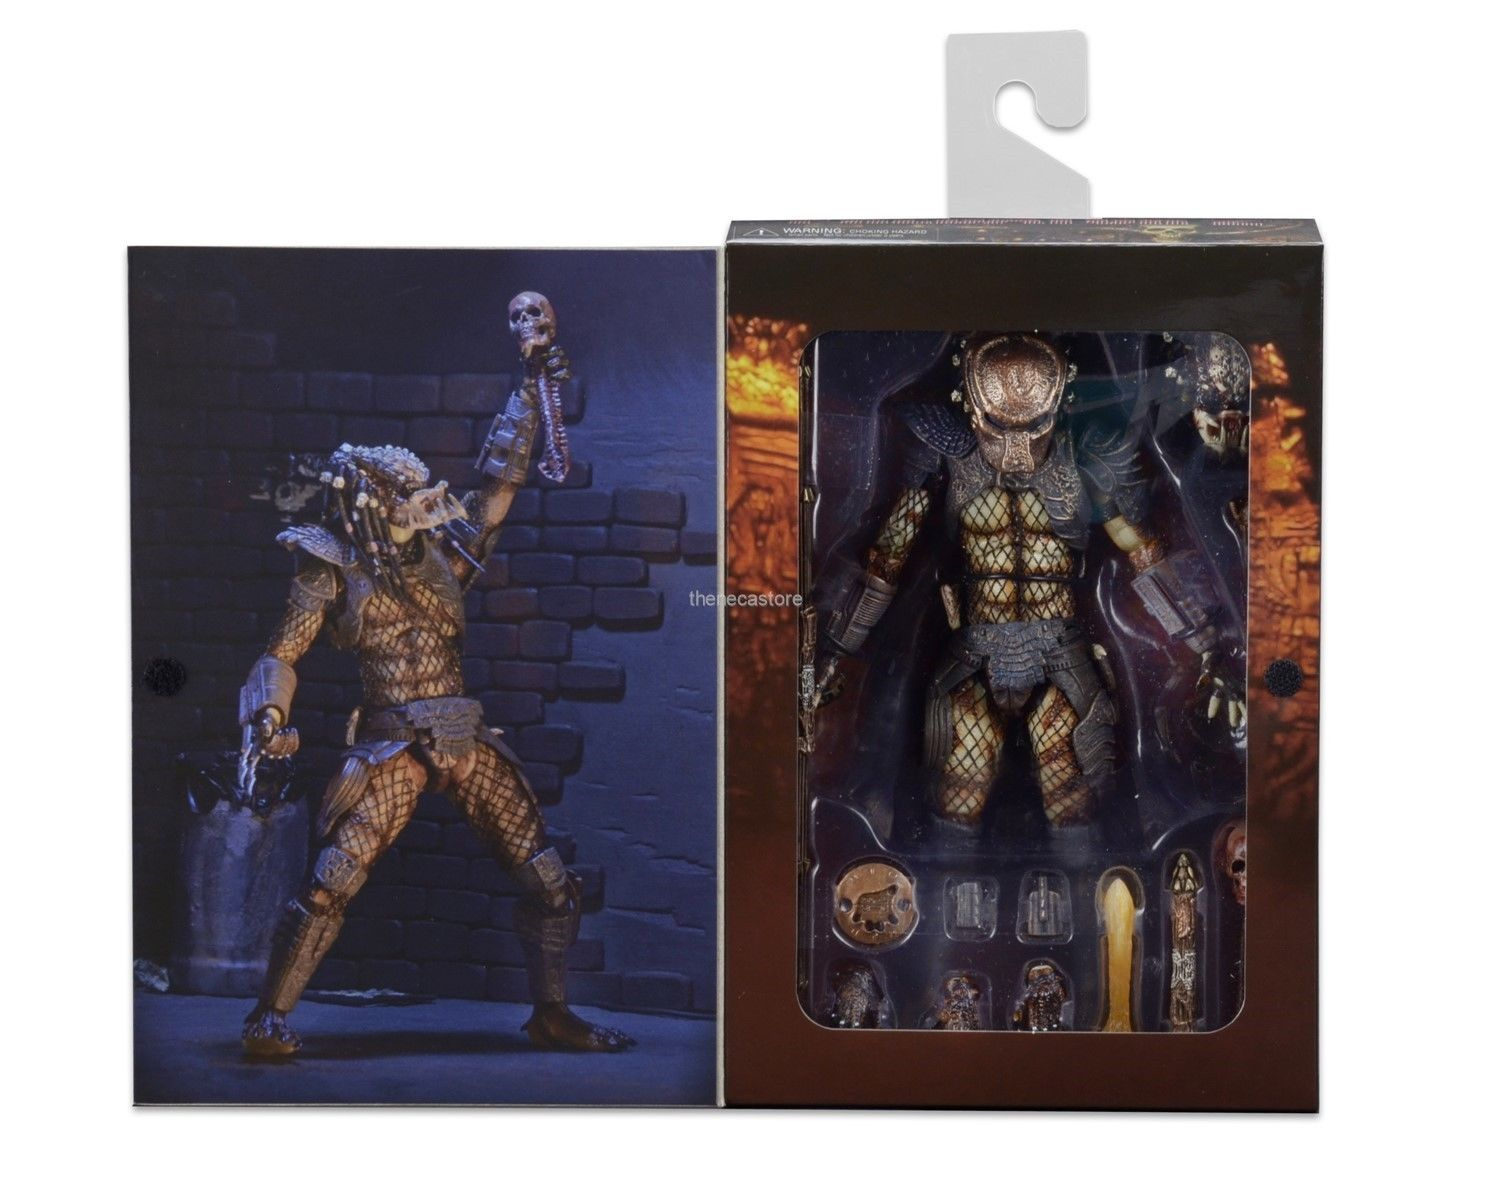 NECA Toys Shipping This Week – Predator 2 City Hunter Predator 7″ Figure